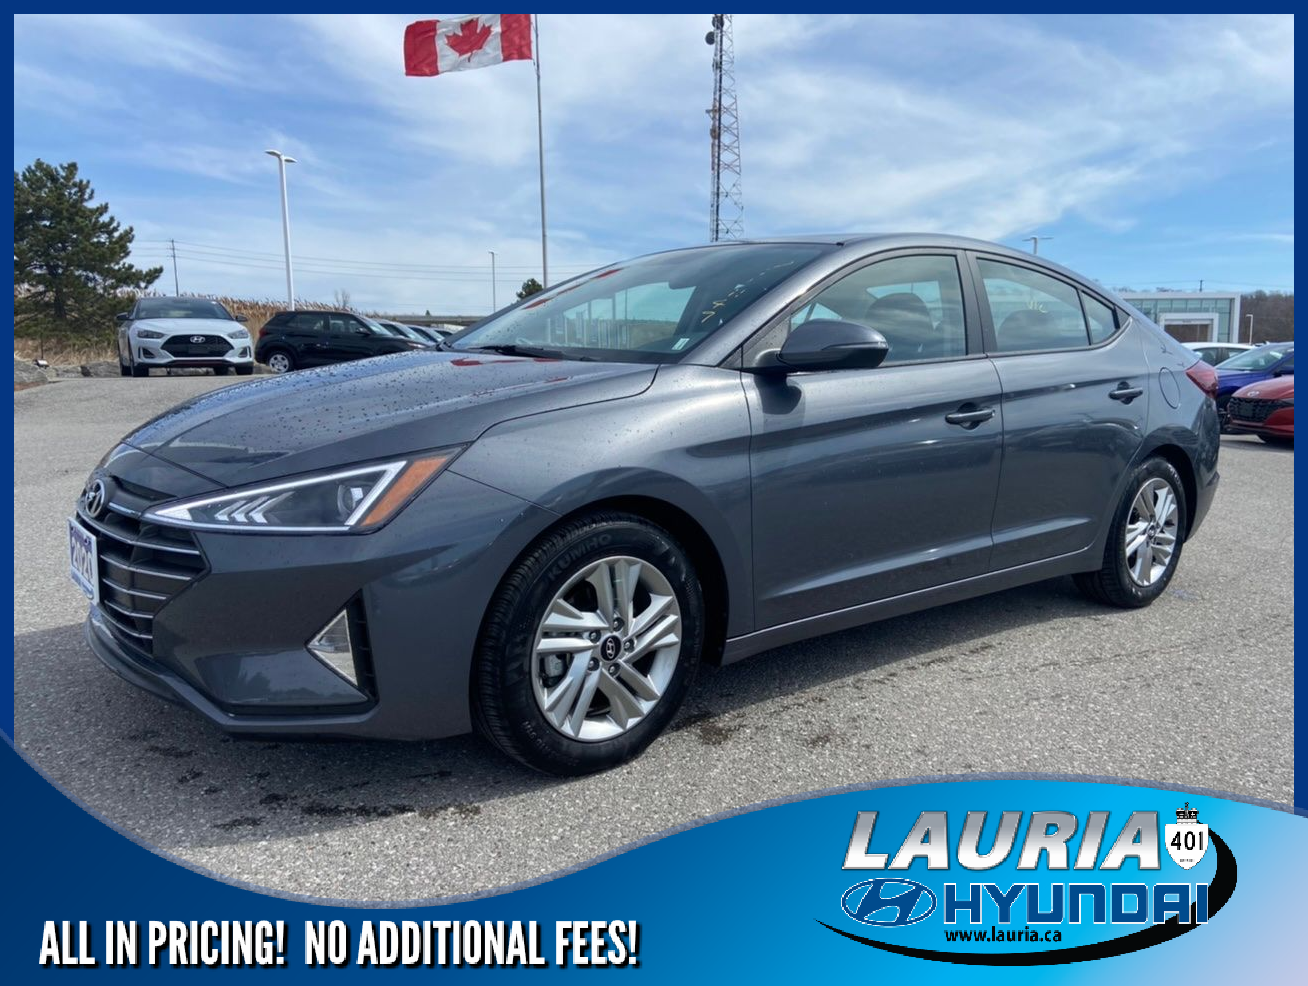 Certified Pre-Owned 2020 Hyundai Elantra Preferred Auto - SUPER LOW KMS